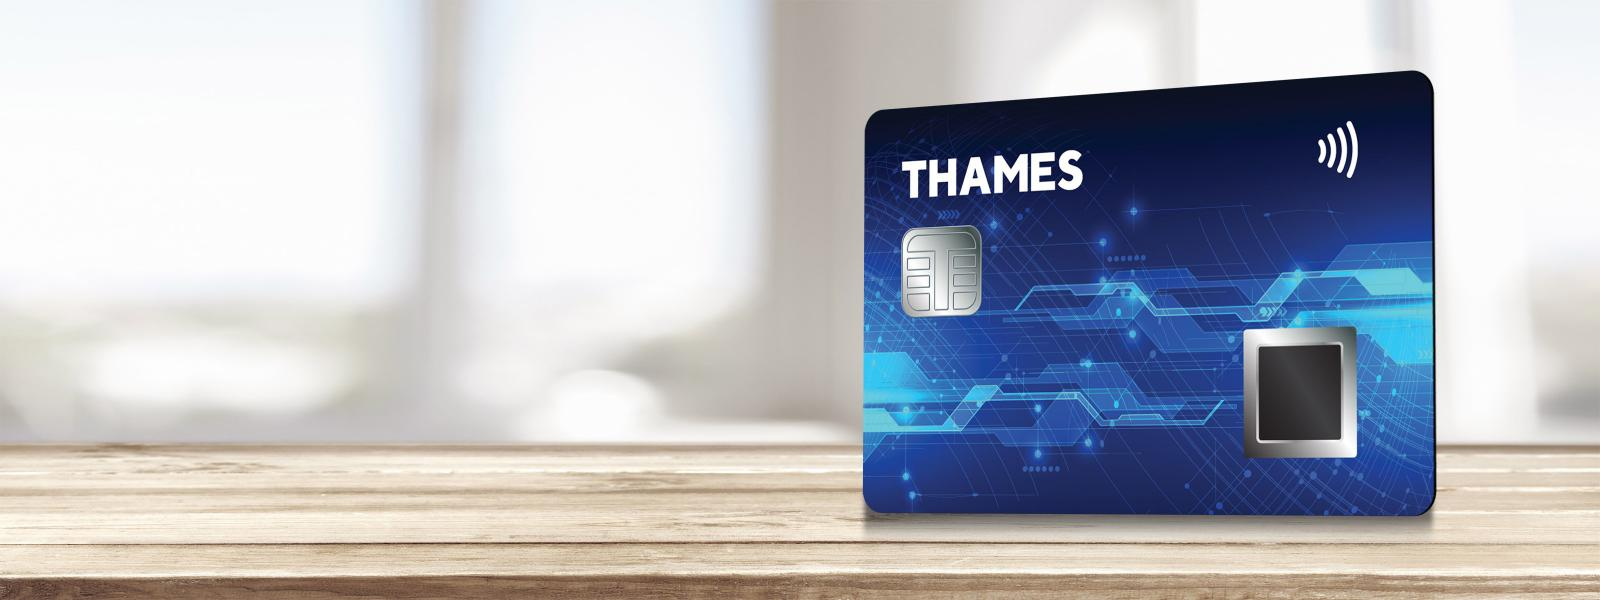 New biometric contactless payment card